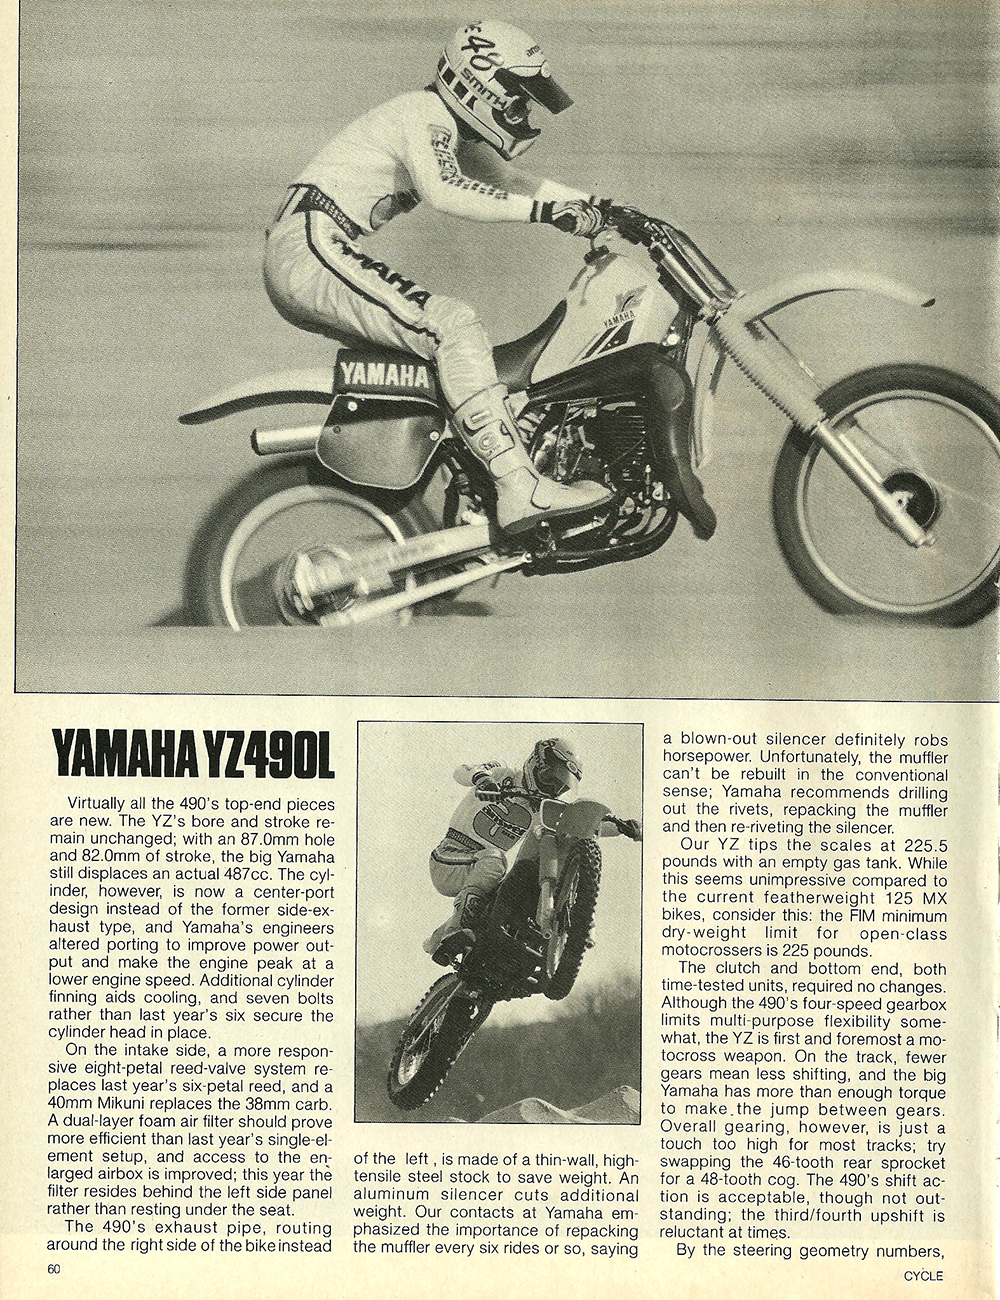 1984 Yamaha YZ490L off road test 3.jpg